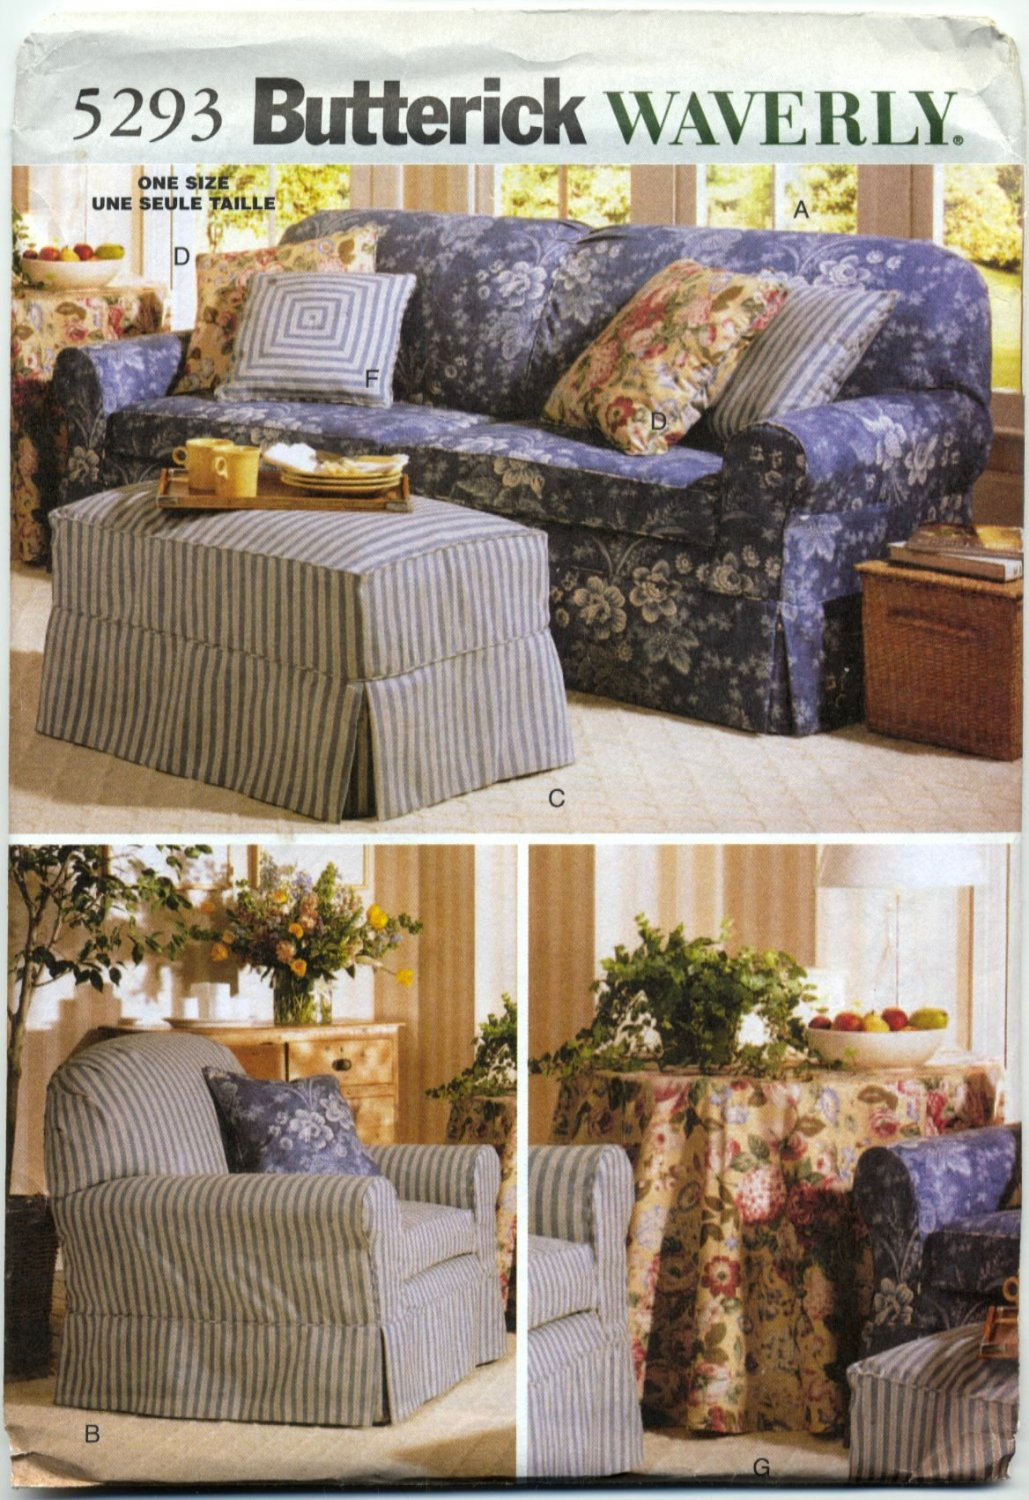 Butterick 5293 Slipcovers - Waverly Home Dec Sewing Pattern - One Size